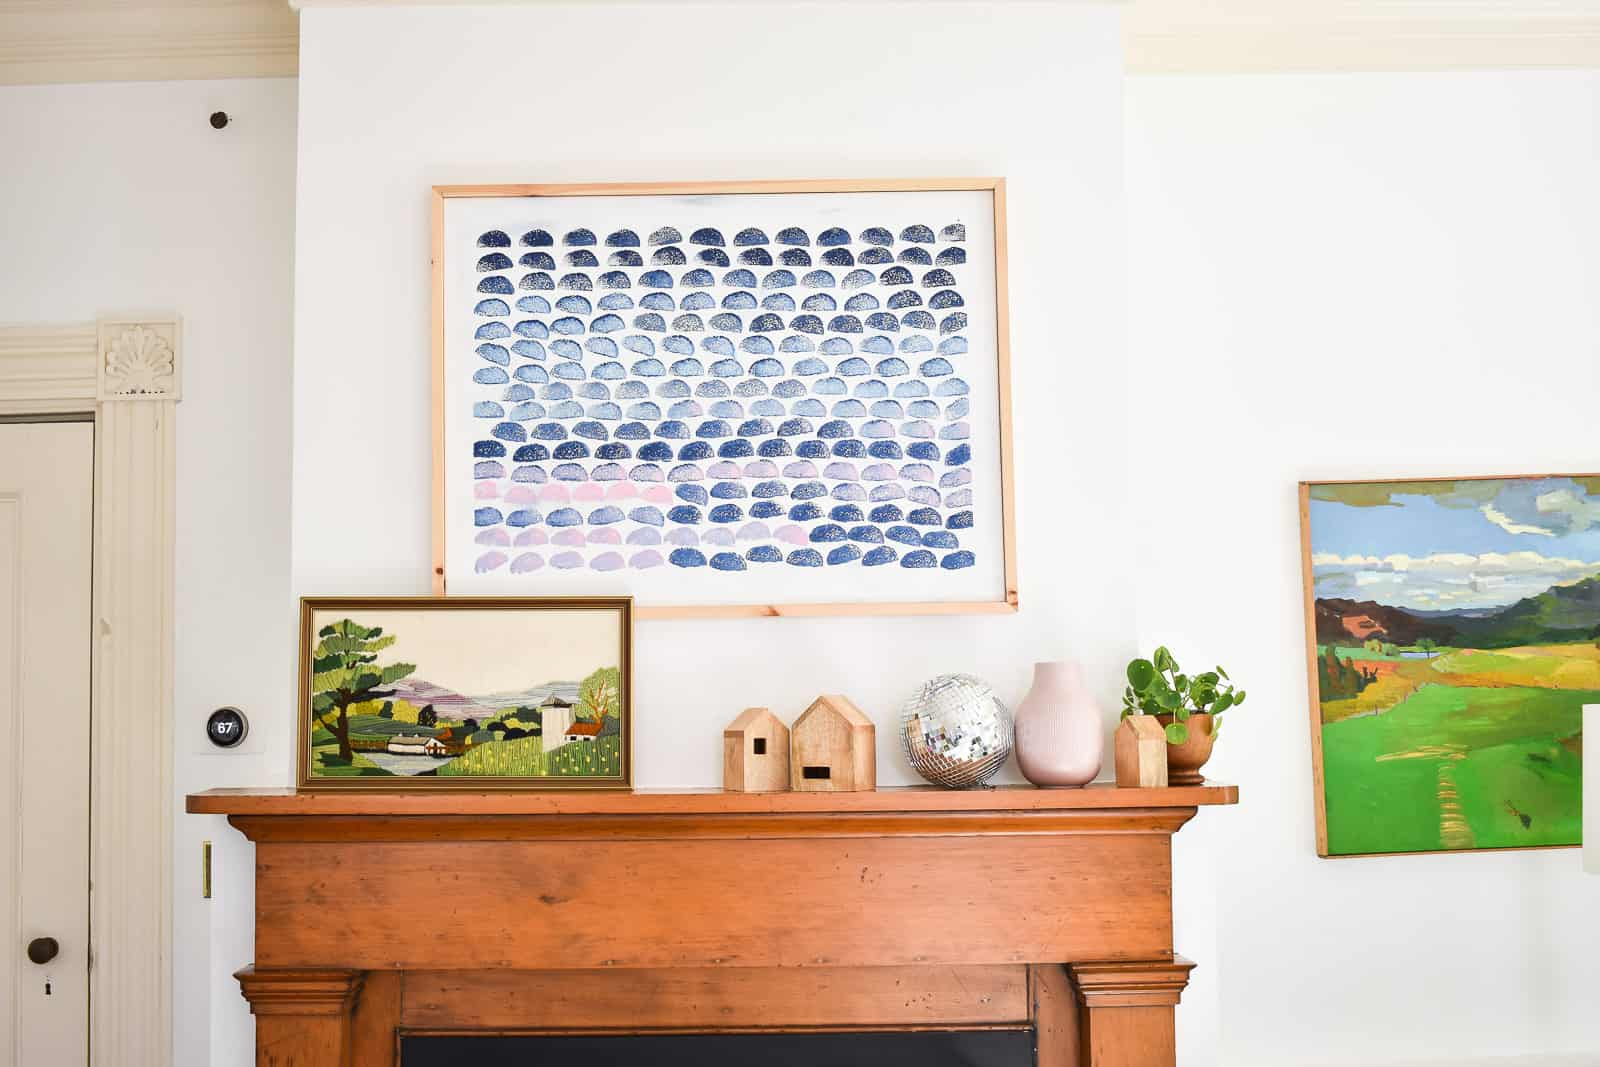 leaning artwork and items that match